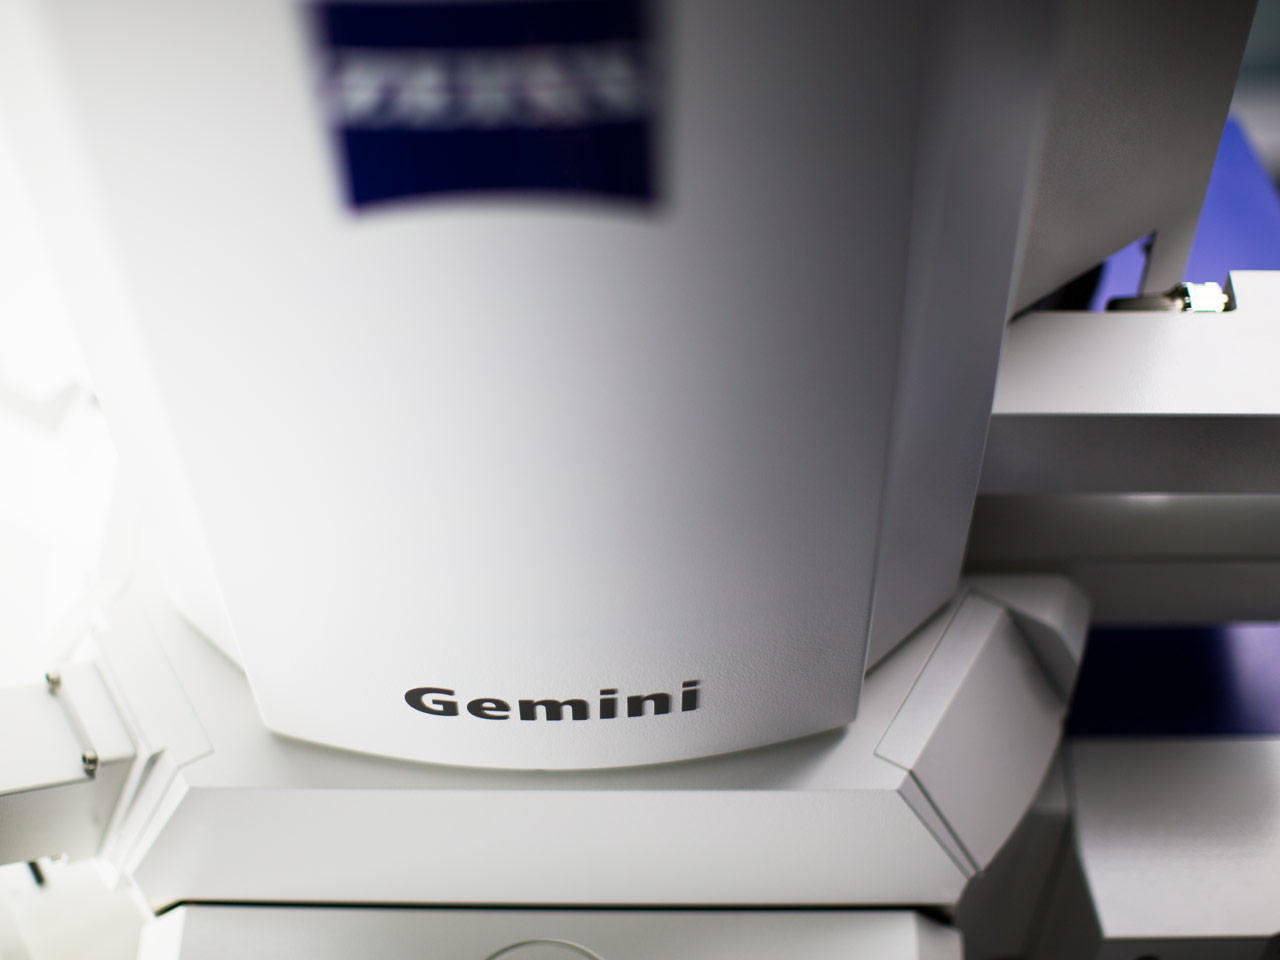 ZEISS Crossbeam with Gemini Optics